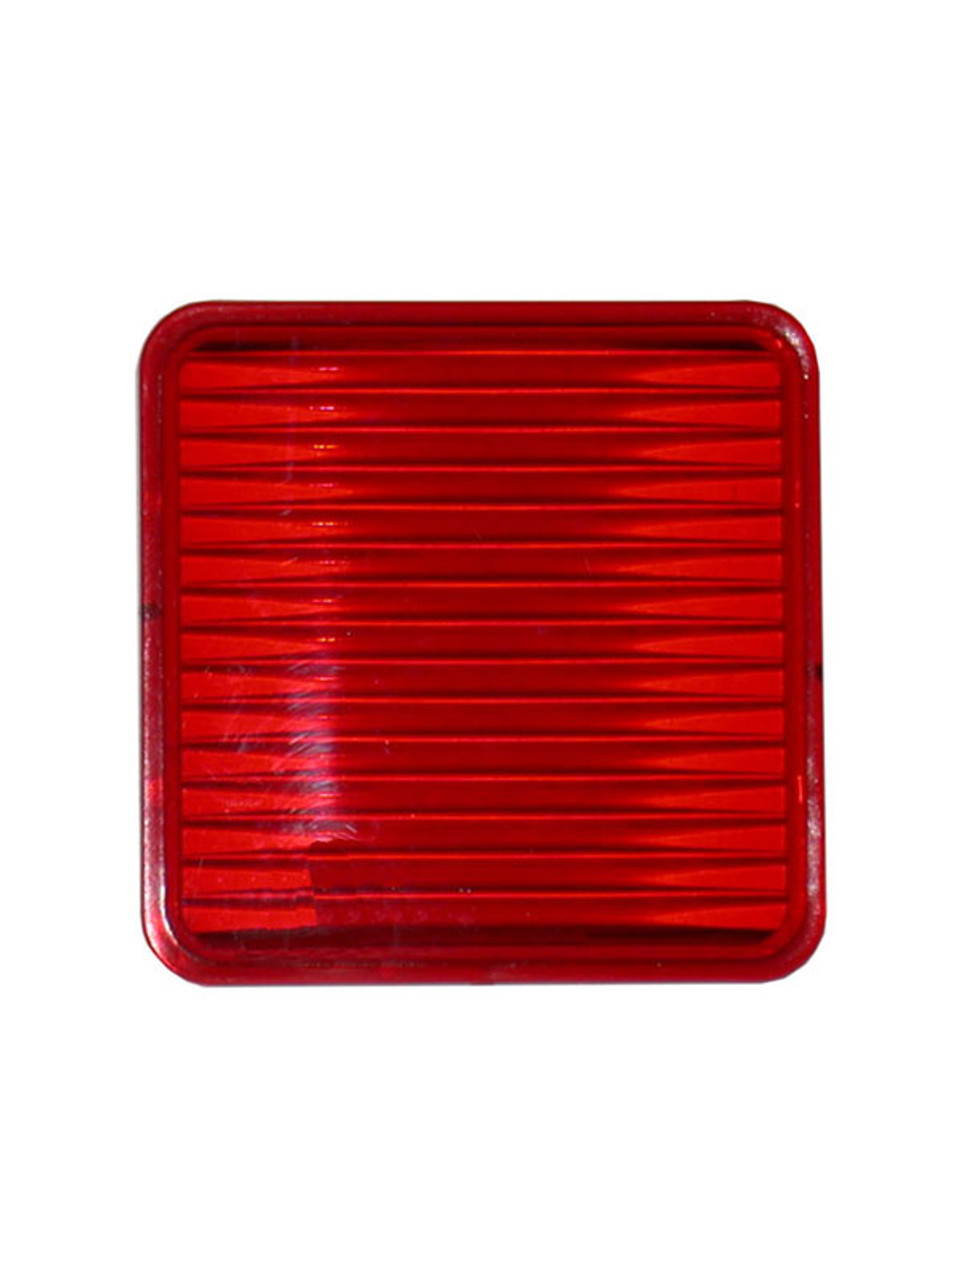 7085440 --- Replacement Red Square Lens